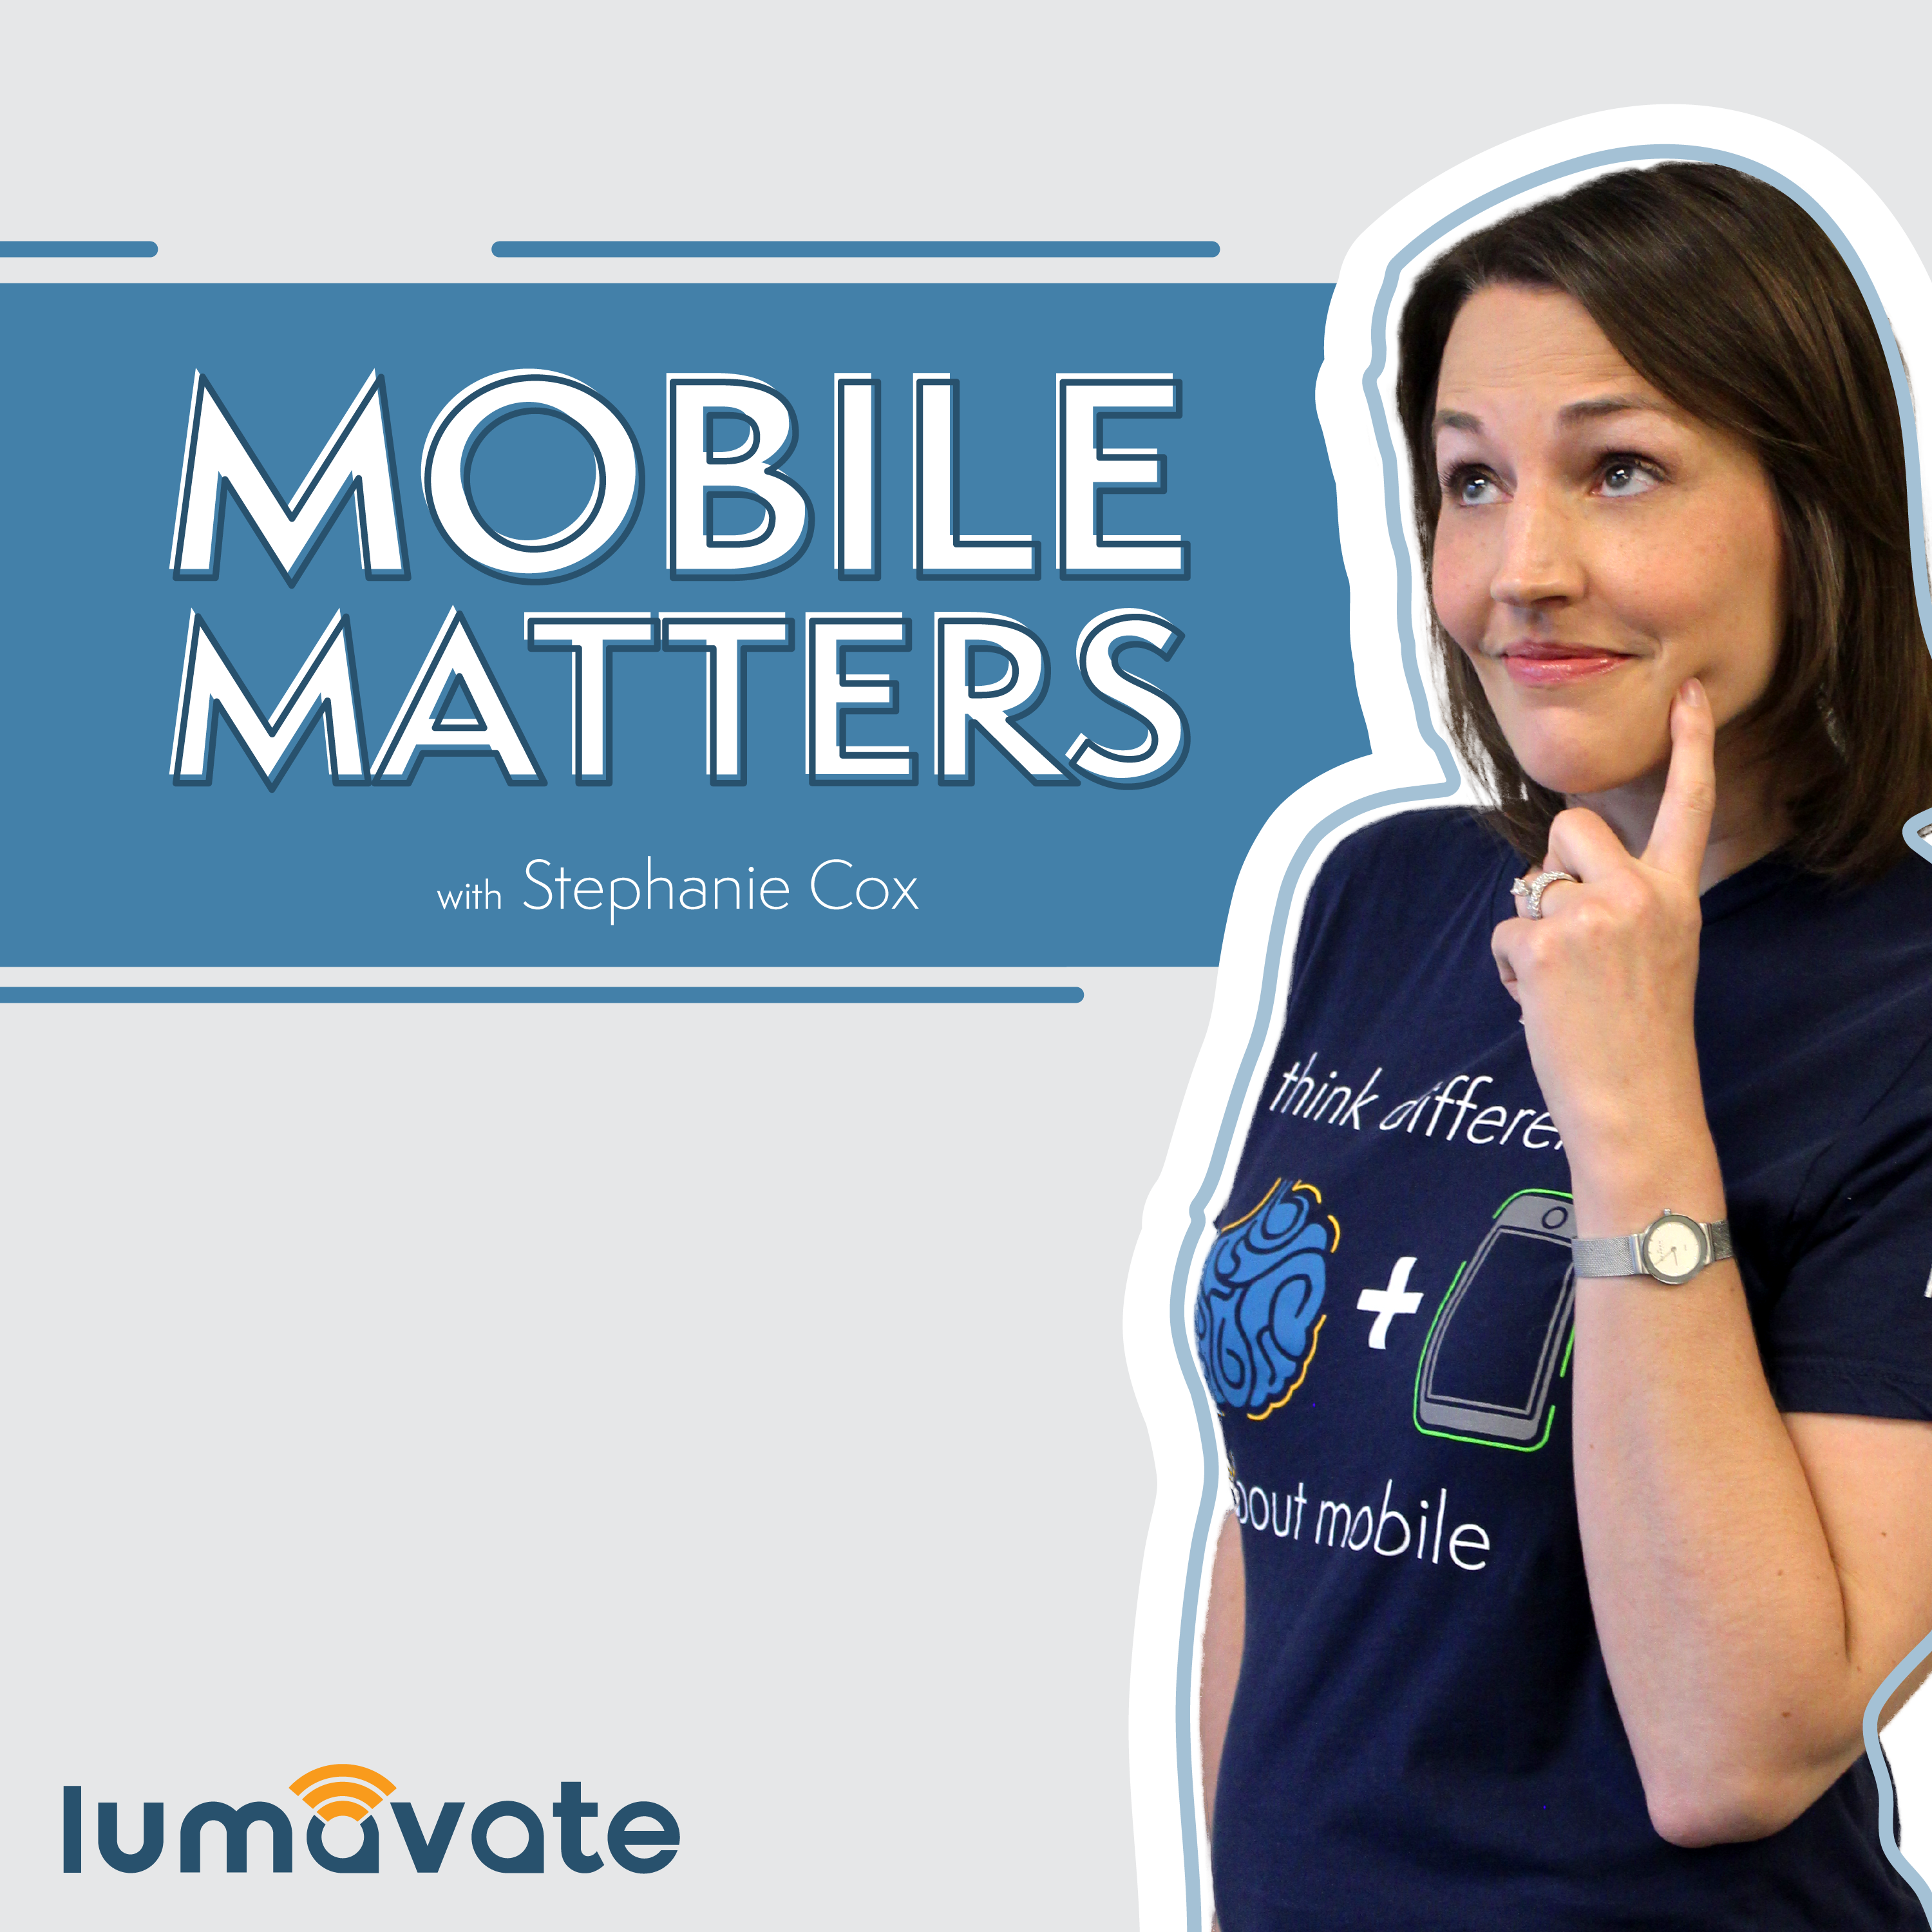 045: The Future of Mobile: Part 2